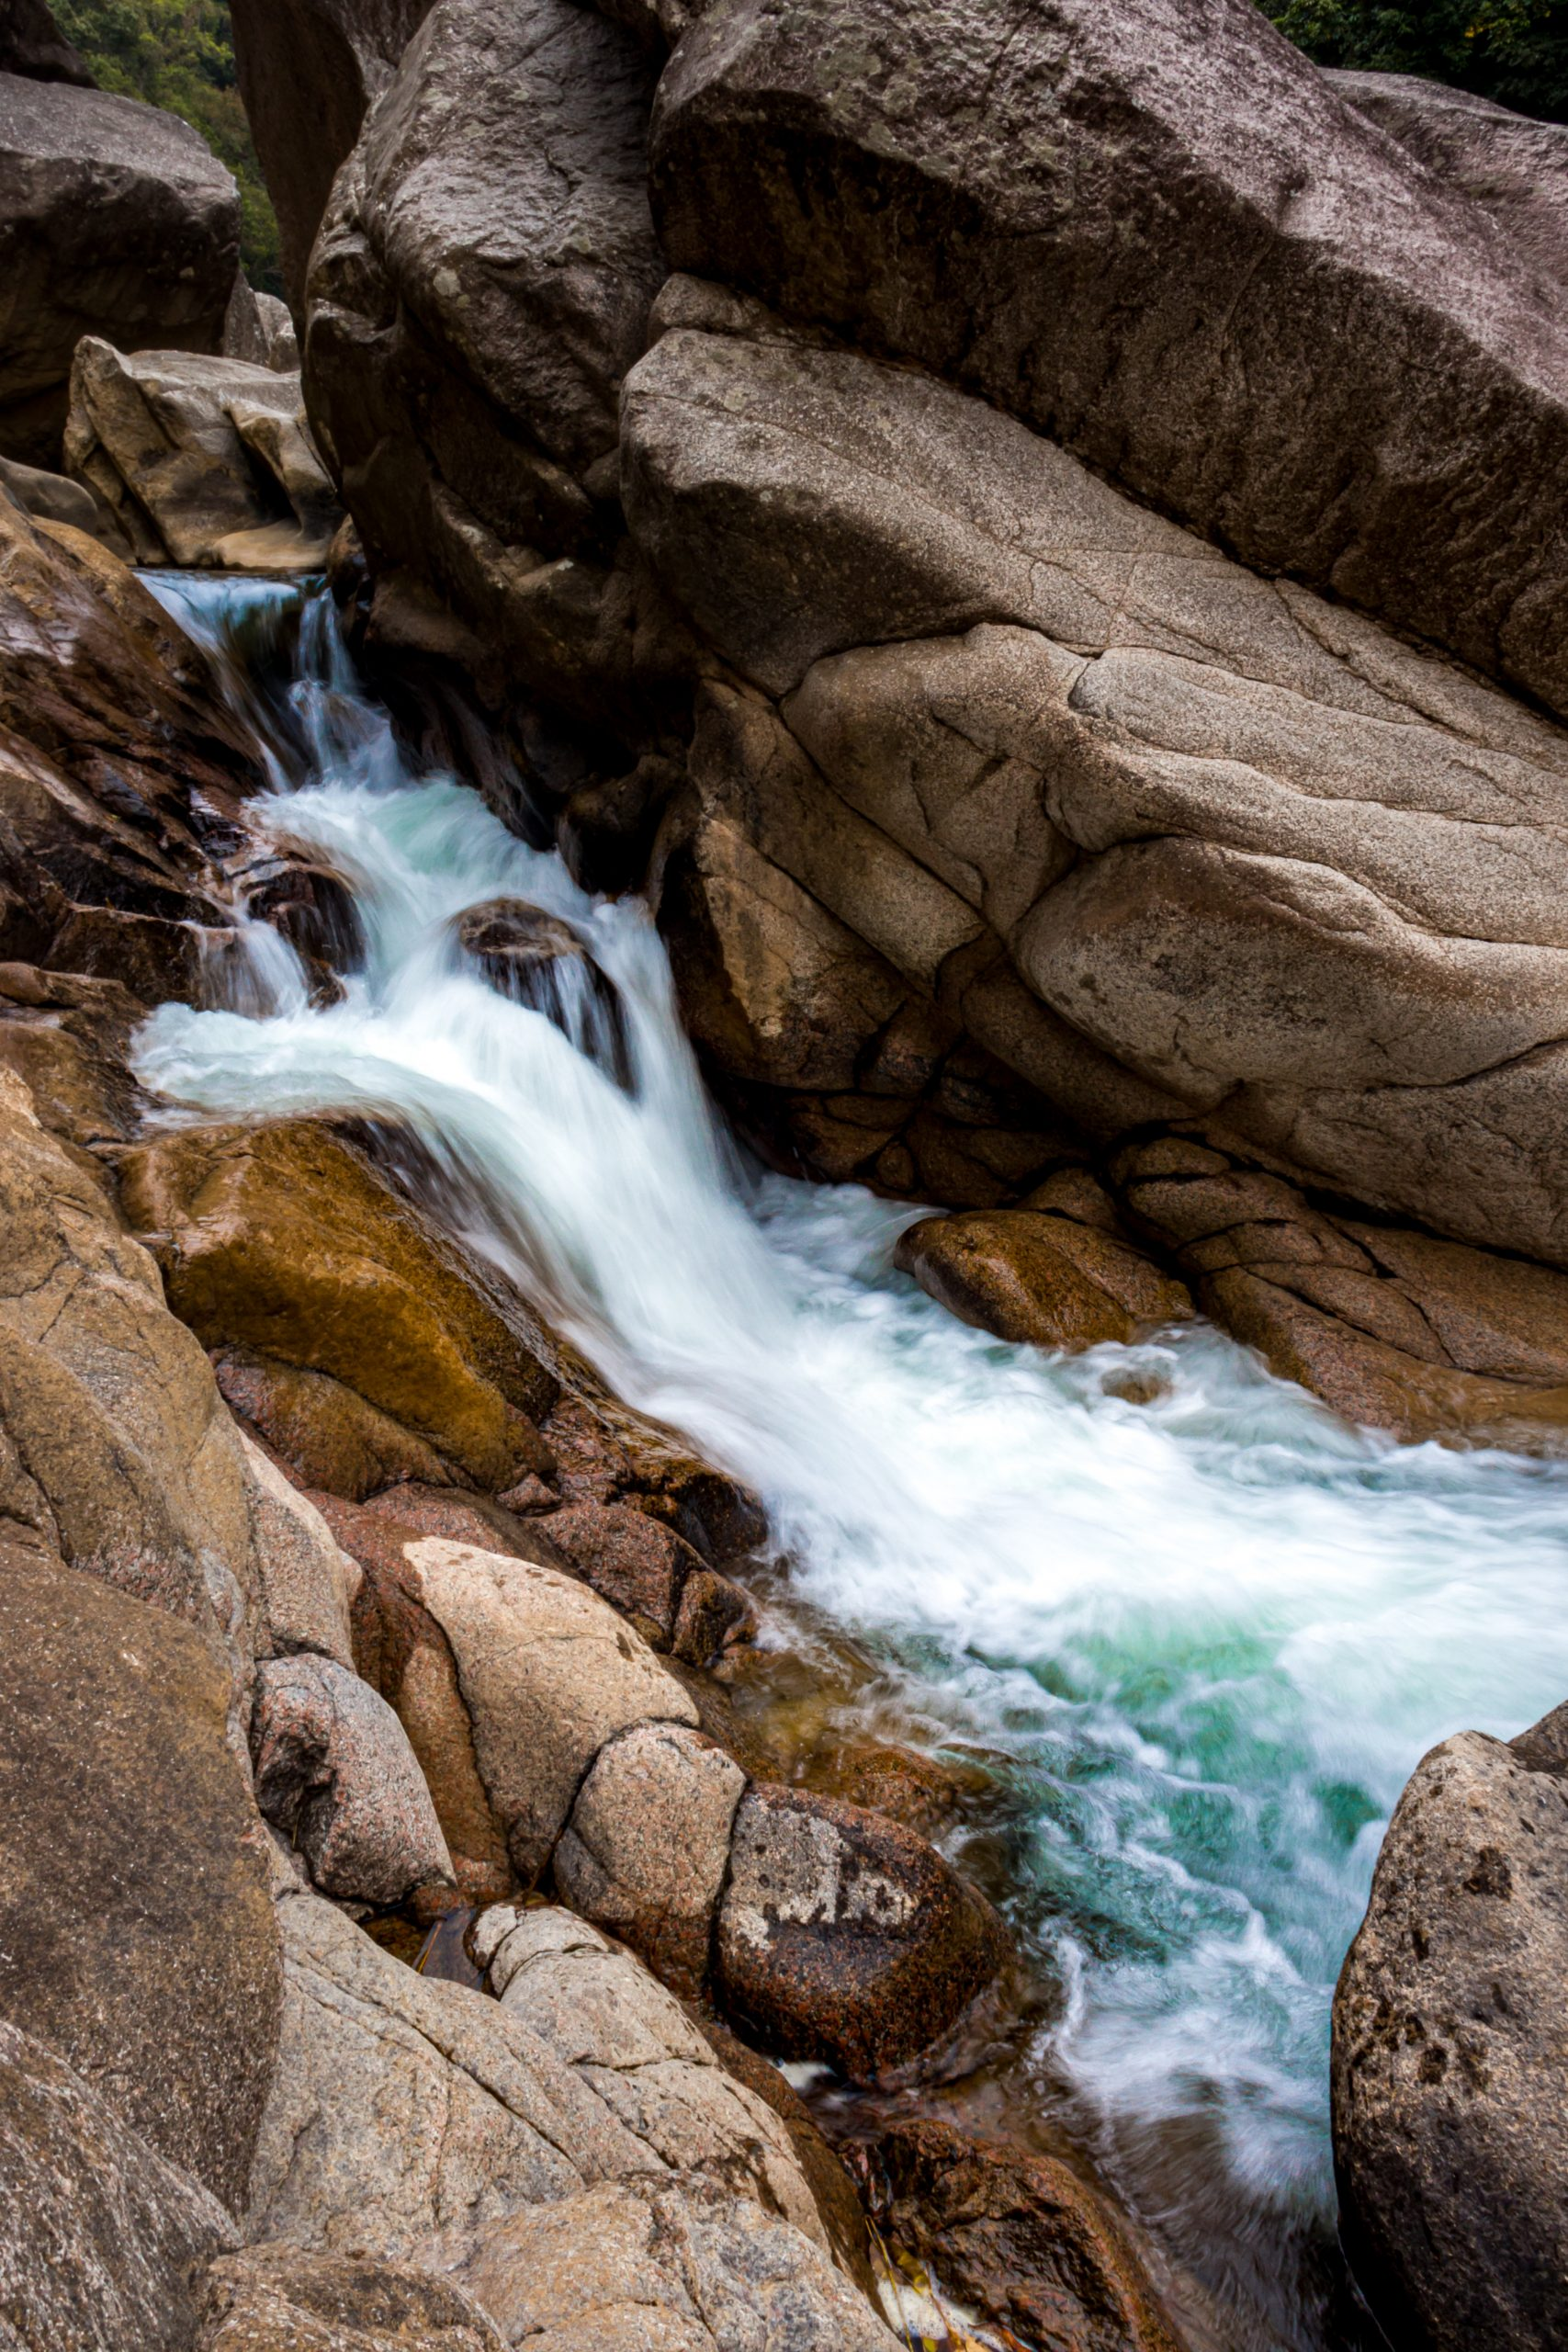 Water flowing through rocks